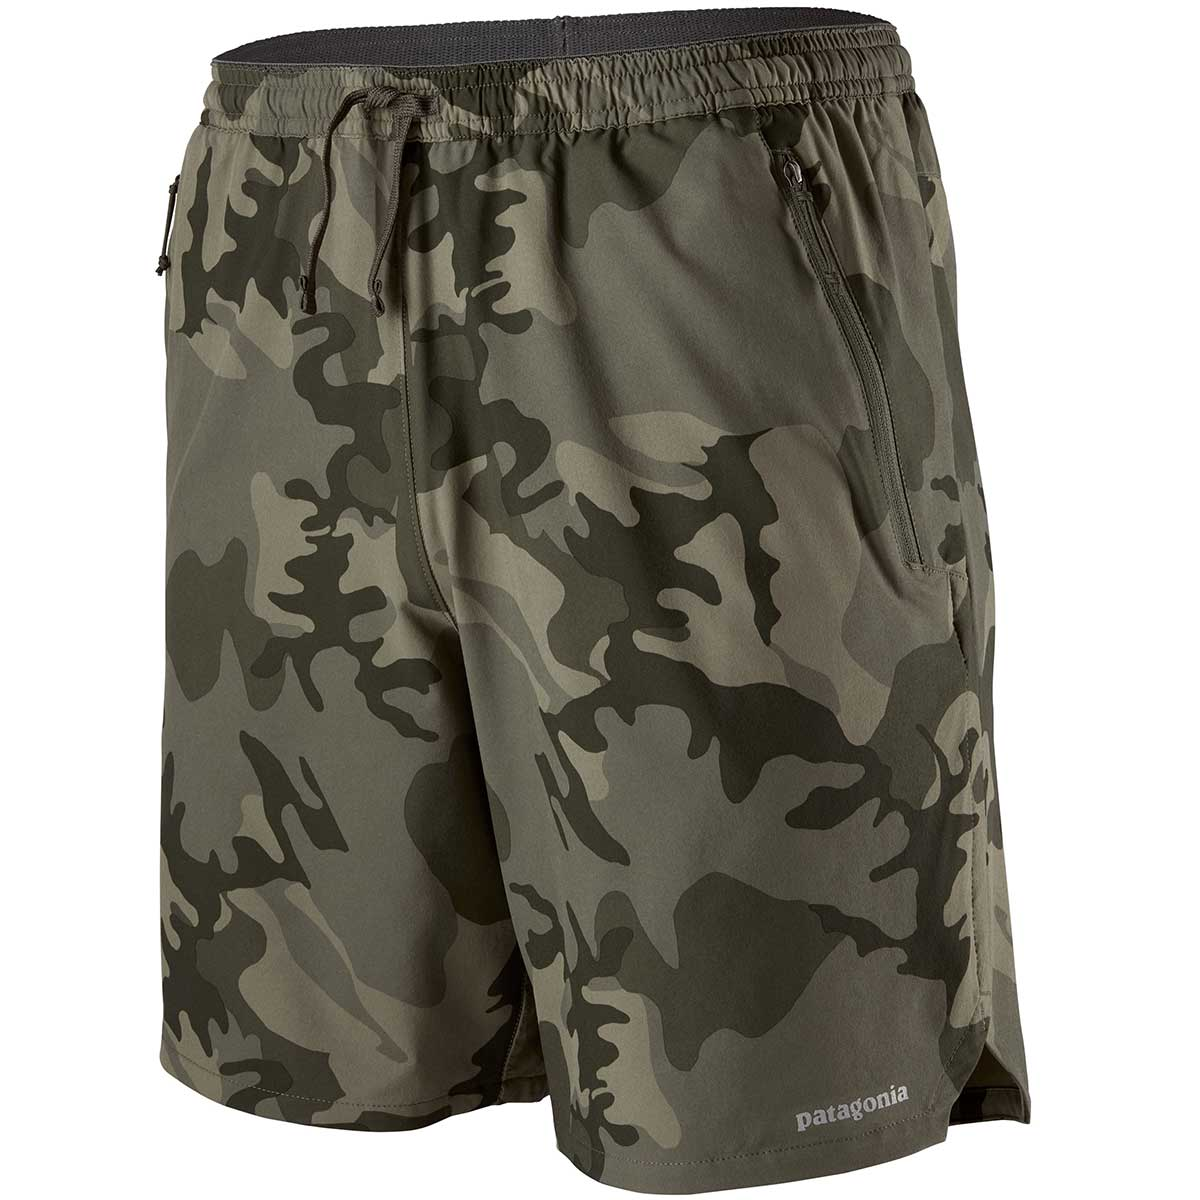 Patagonia men's Nine Trails 8in Short in River Delta and Industrial Green main view